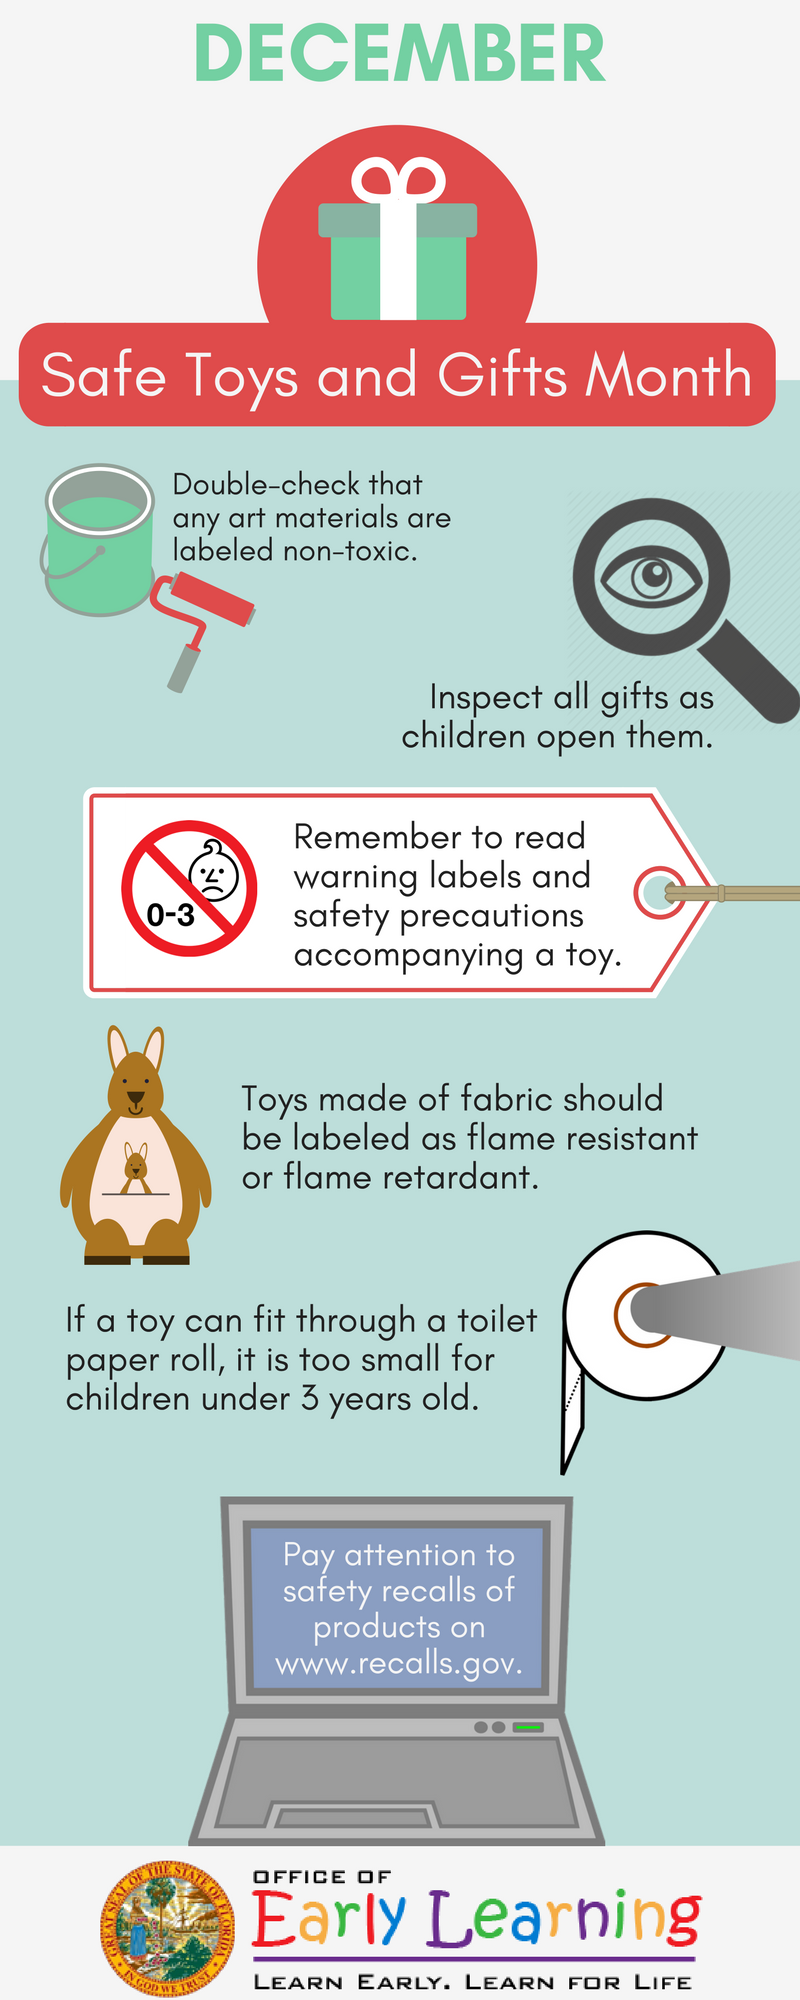 December is Safe Toys and Gifts Month! Keep these tips in